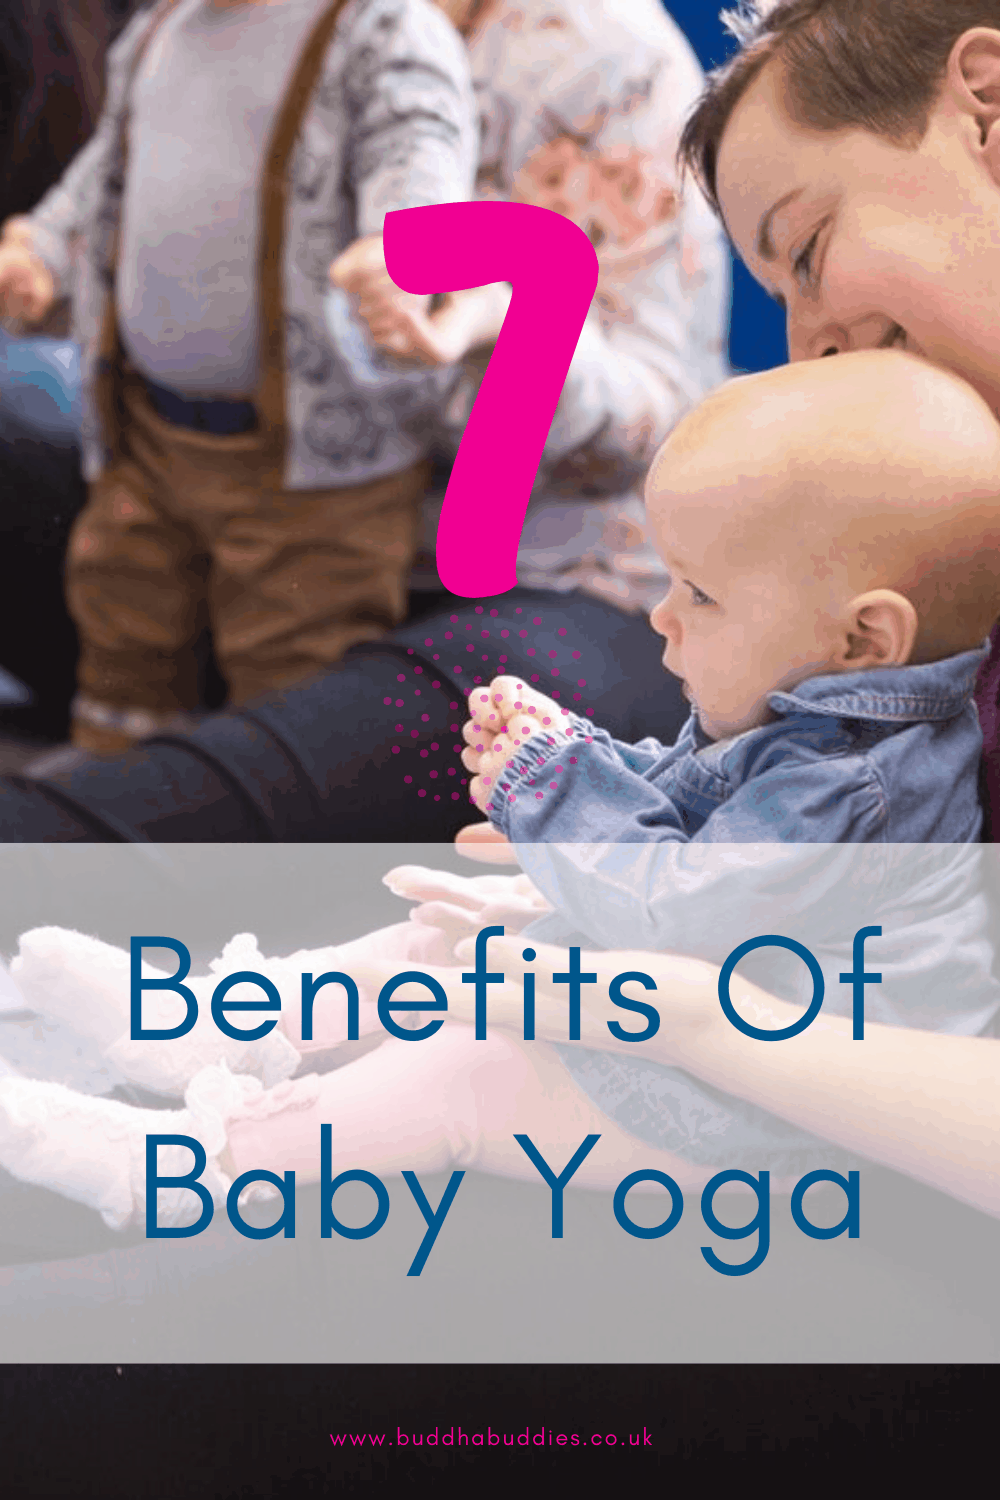 7 Benefits Of Baby Yoga